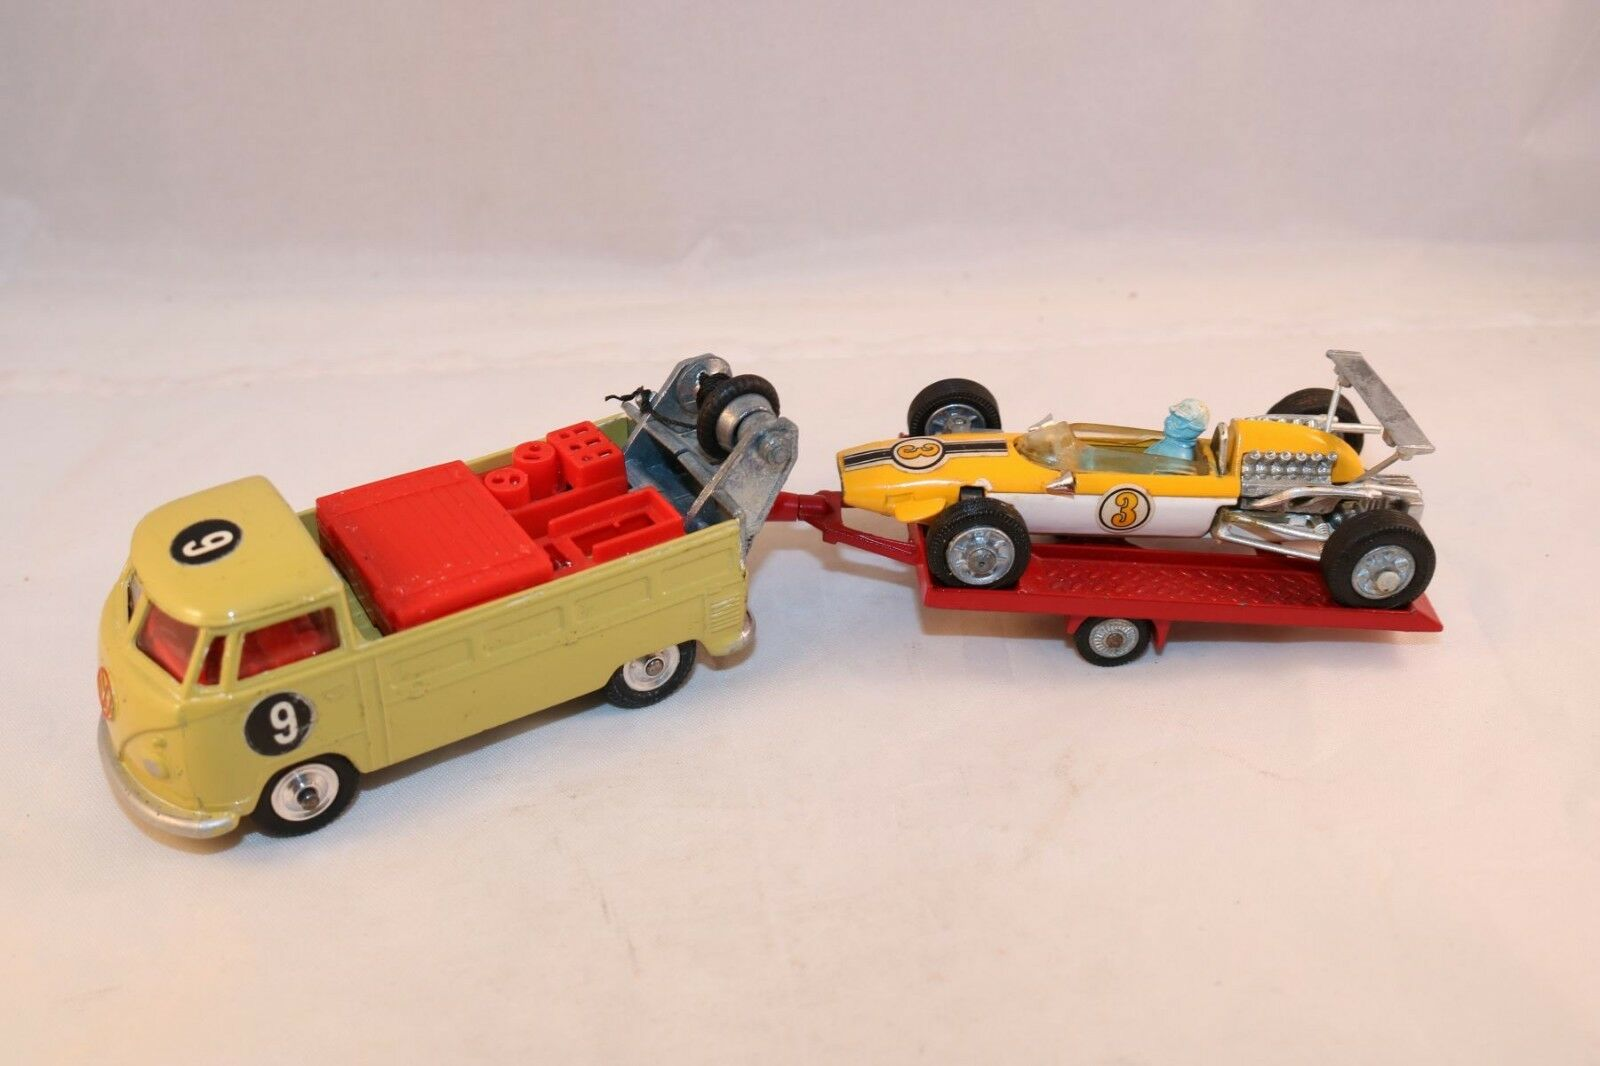 Corgi Toys Giftset 25 Volkswagen with trailer and Cooper near mint condition